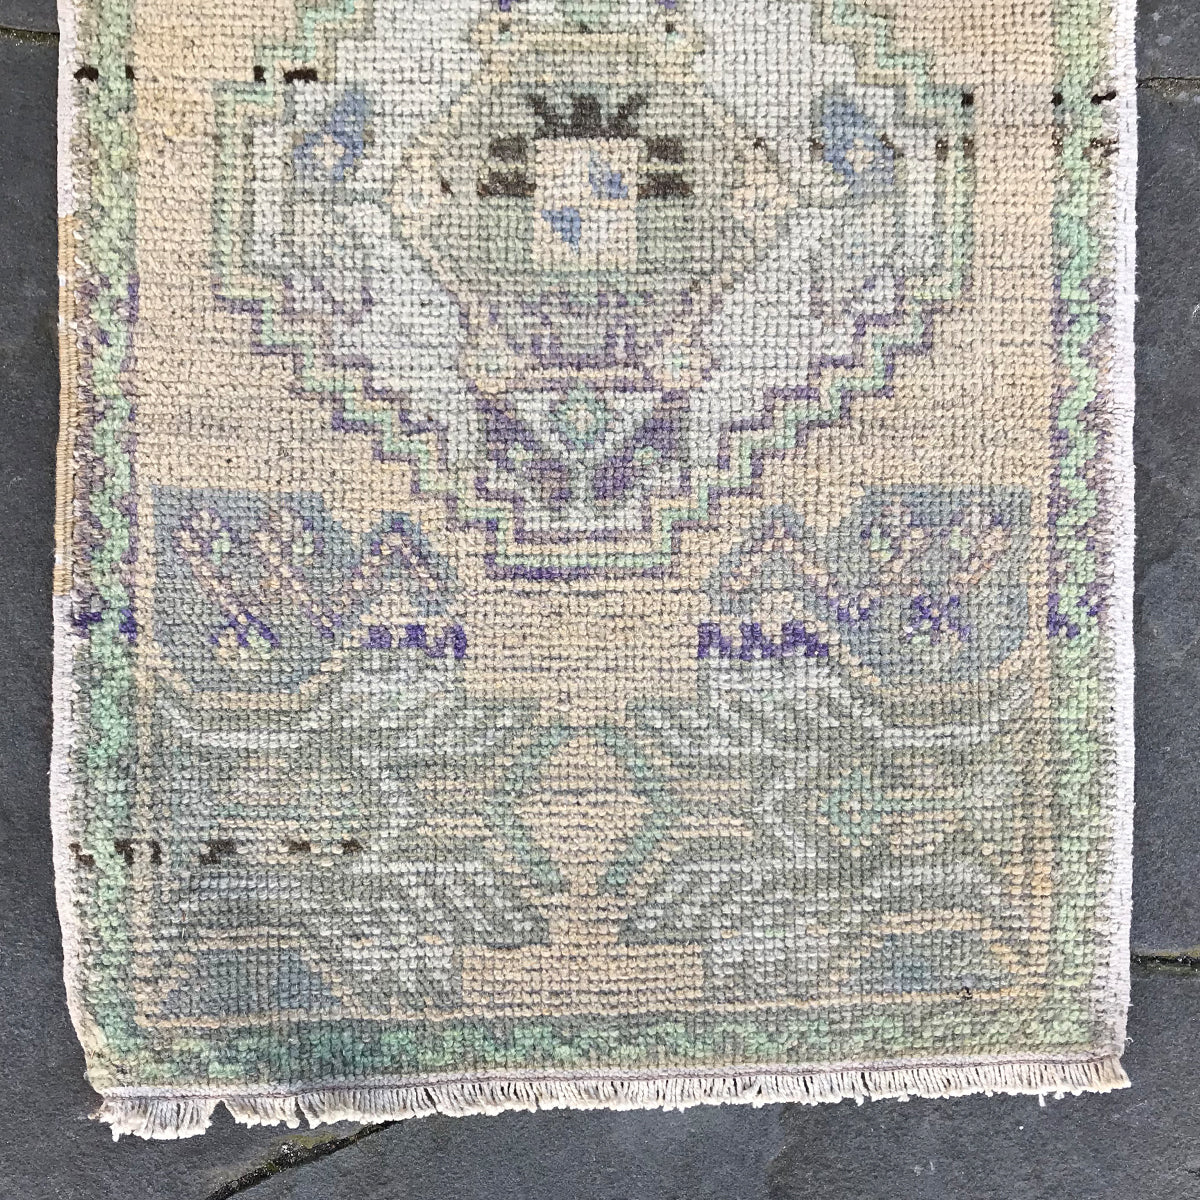 24 Small Handwoven Vintage 19x34